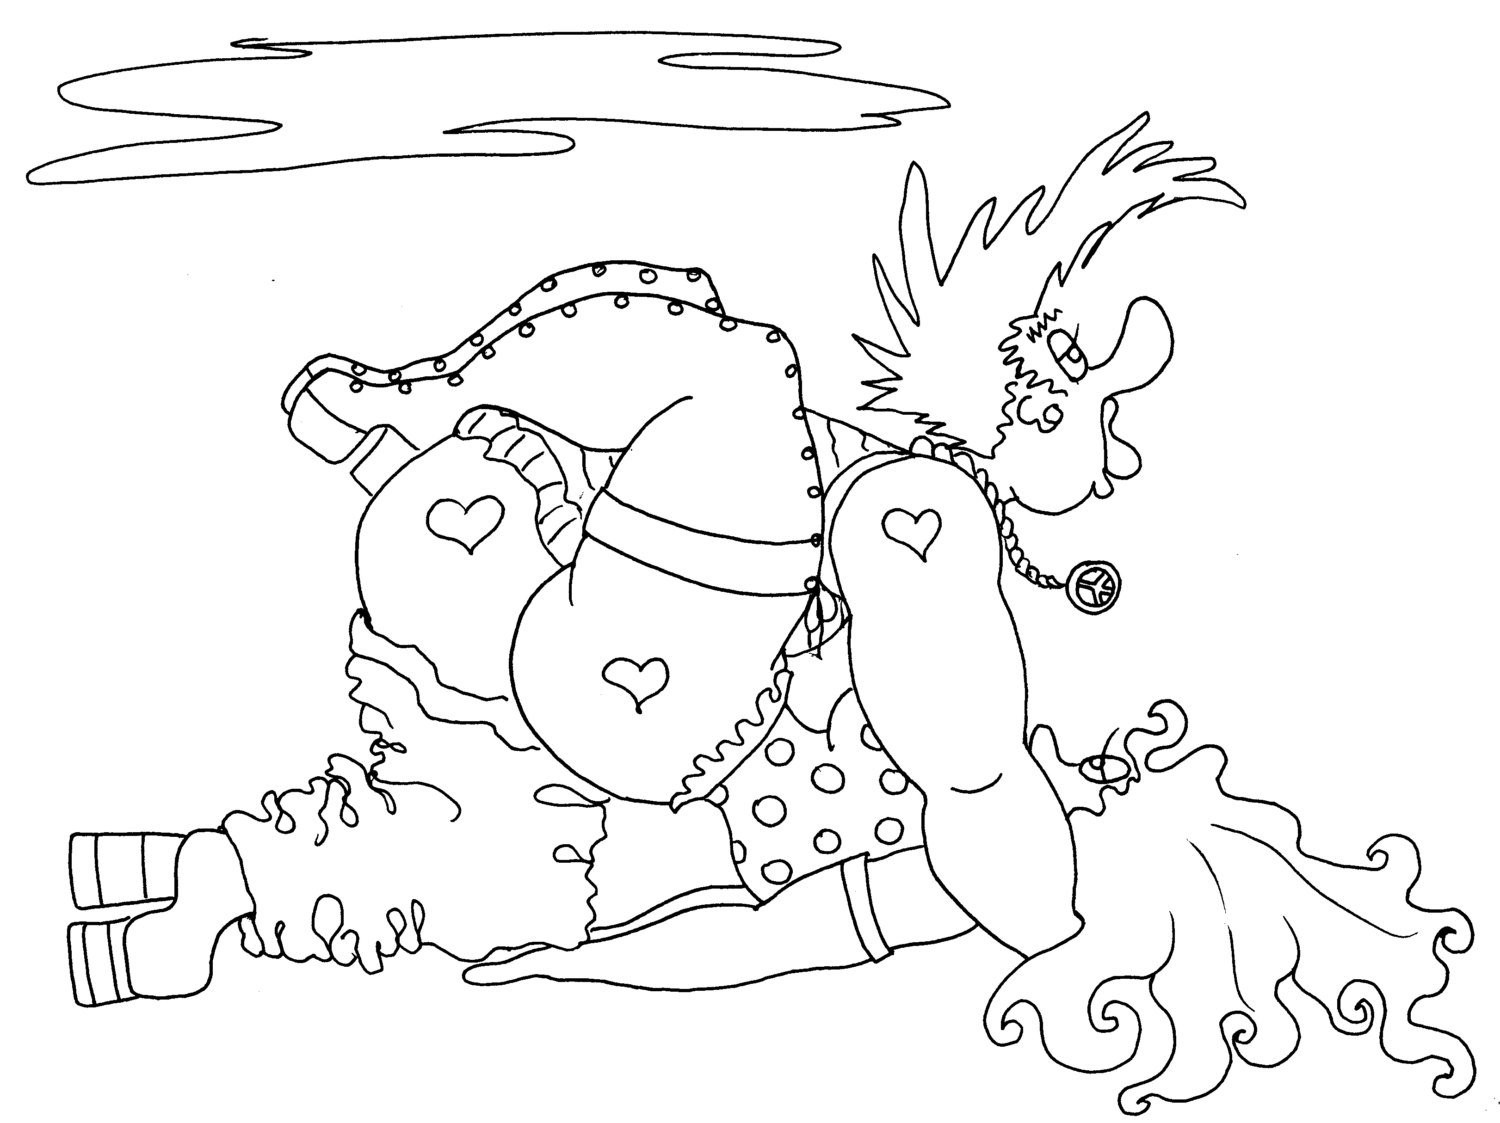 Kama Sutra Coloring Book  The Grip a Kama Sutra y Adult Coloring Page from the